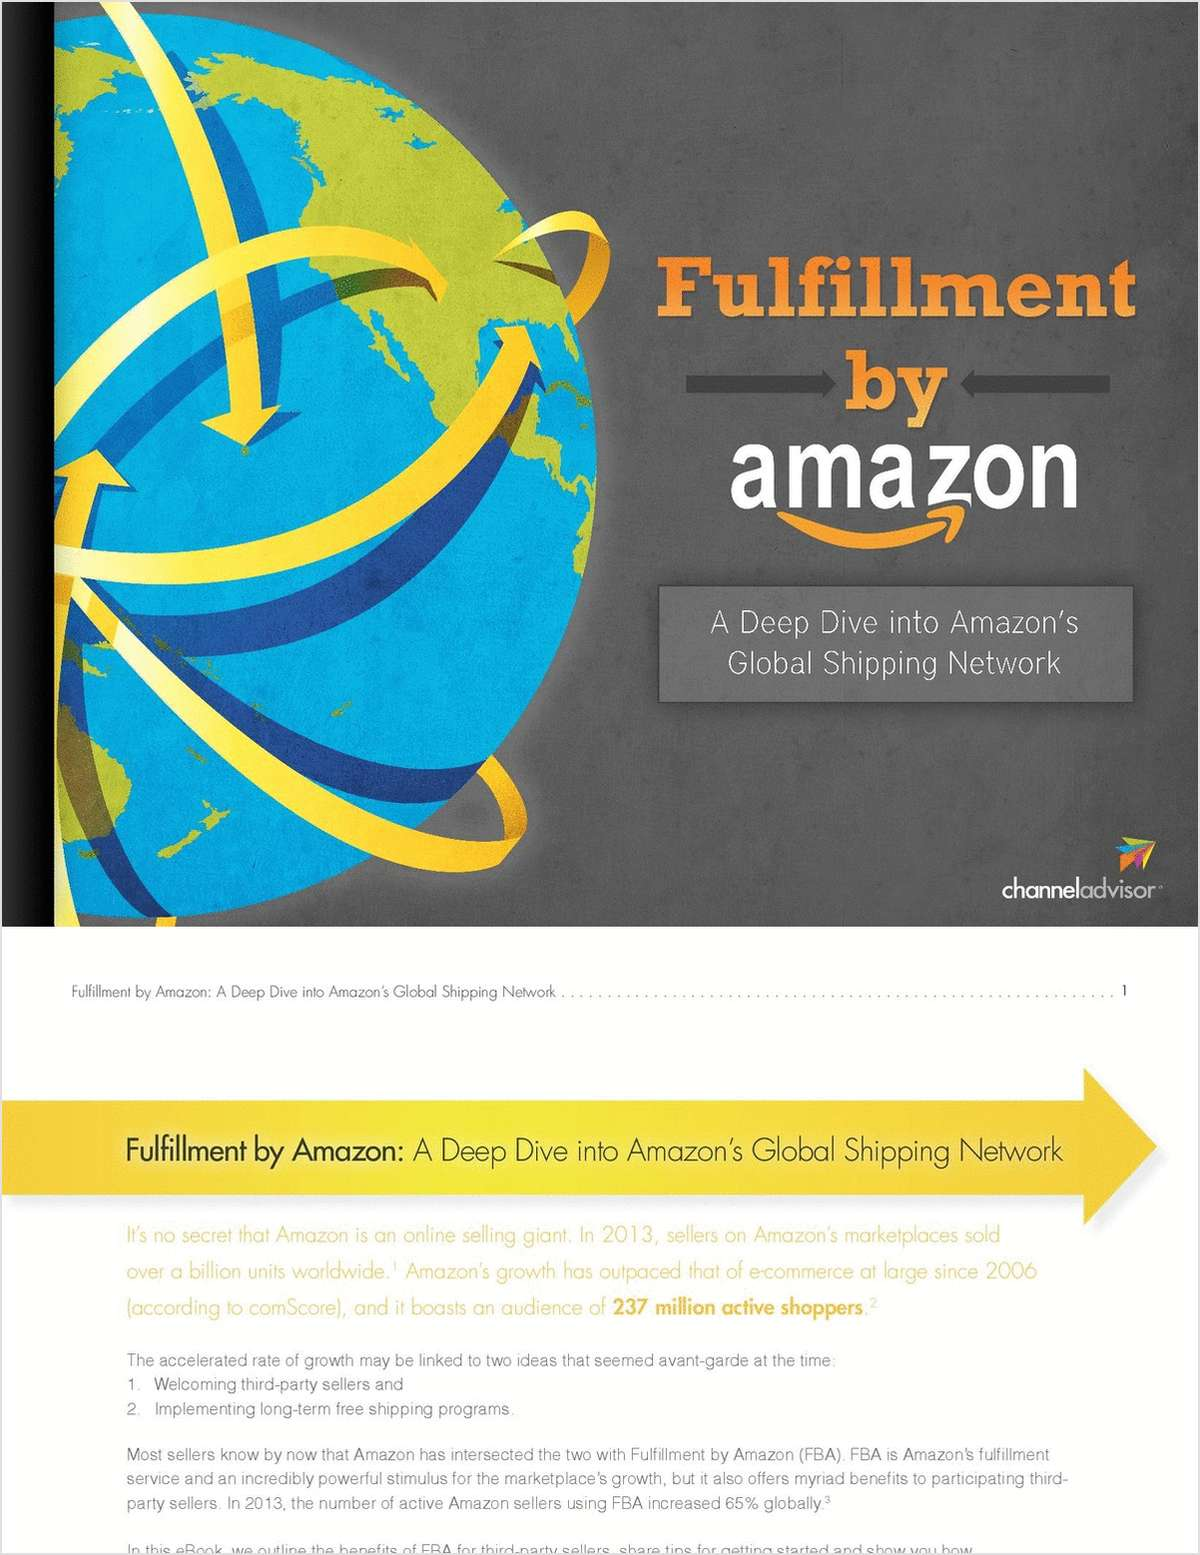 Fulfillment by Amazon: A Deep Dive into Amazon's Global Shipping Network